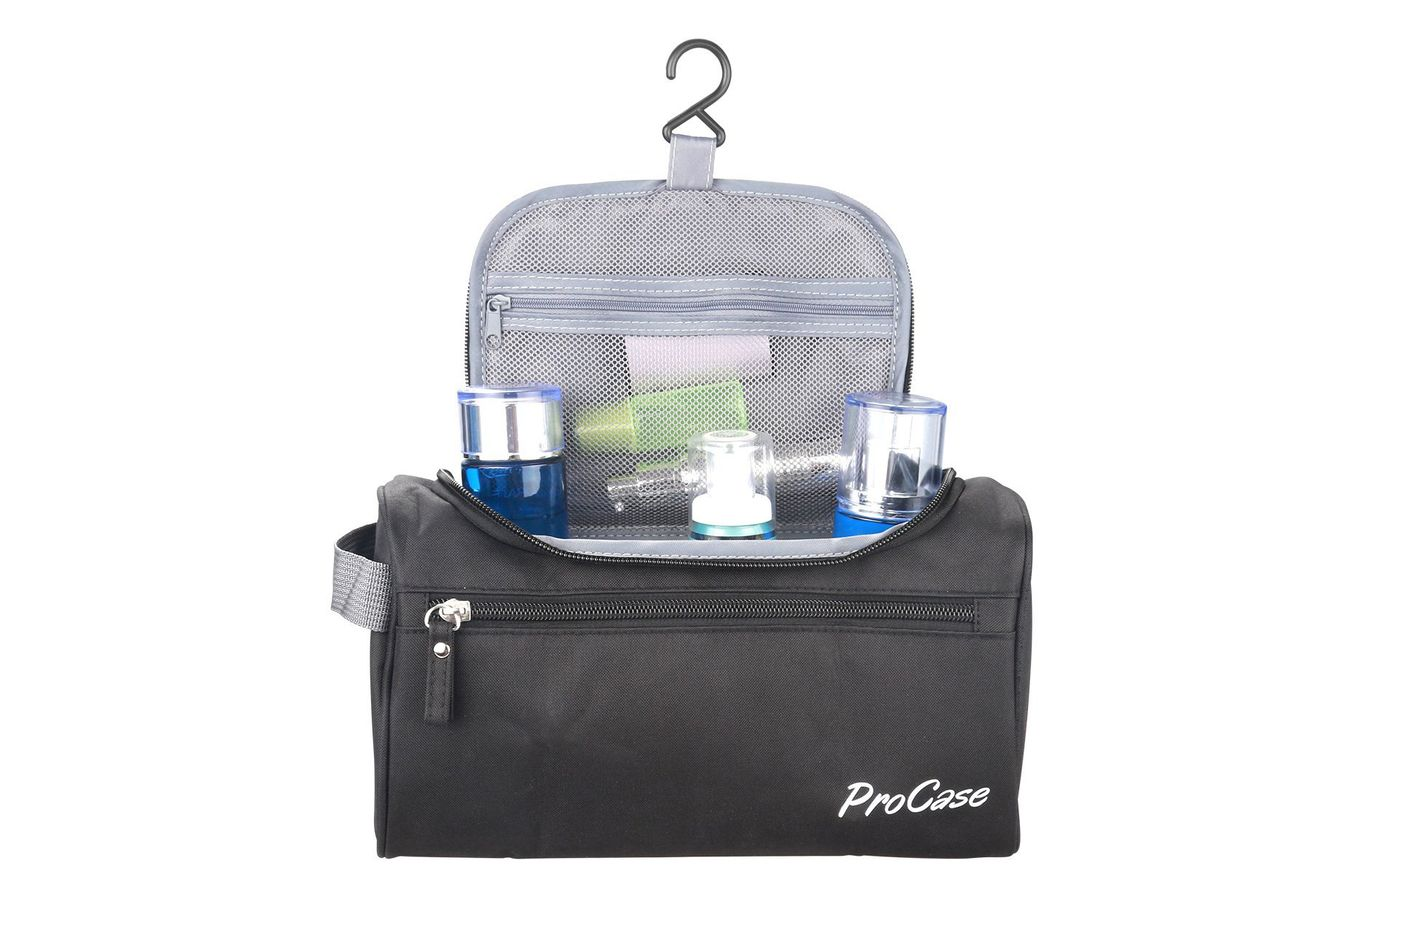 8f225cd9ad Best nylon Dopp kit with hanging hook. ProCase Toiletry Bag Travel Case  With Hanging Hook